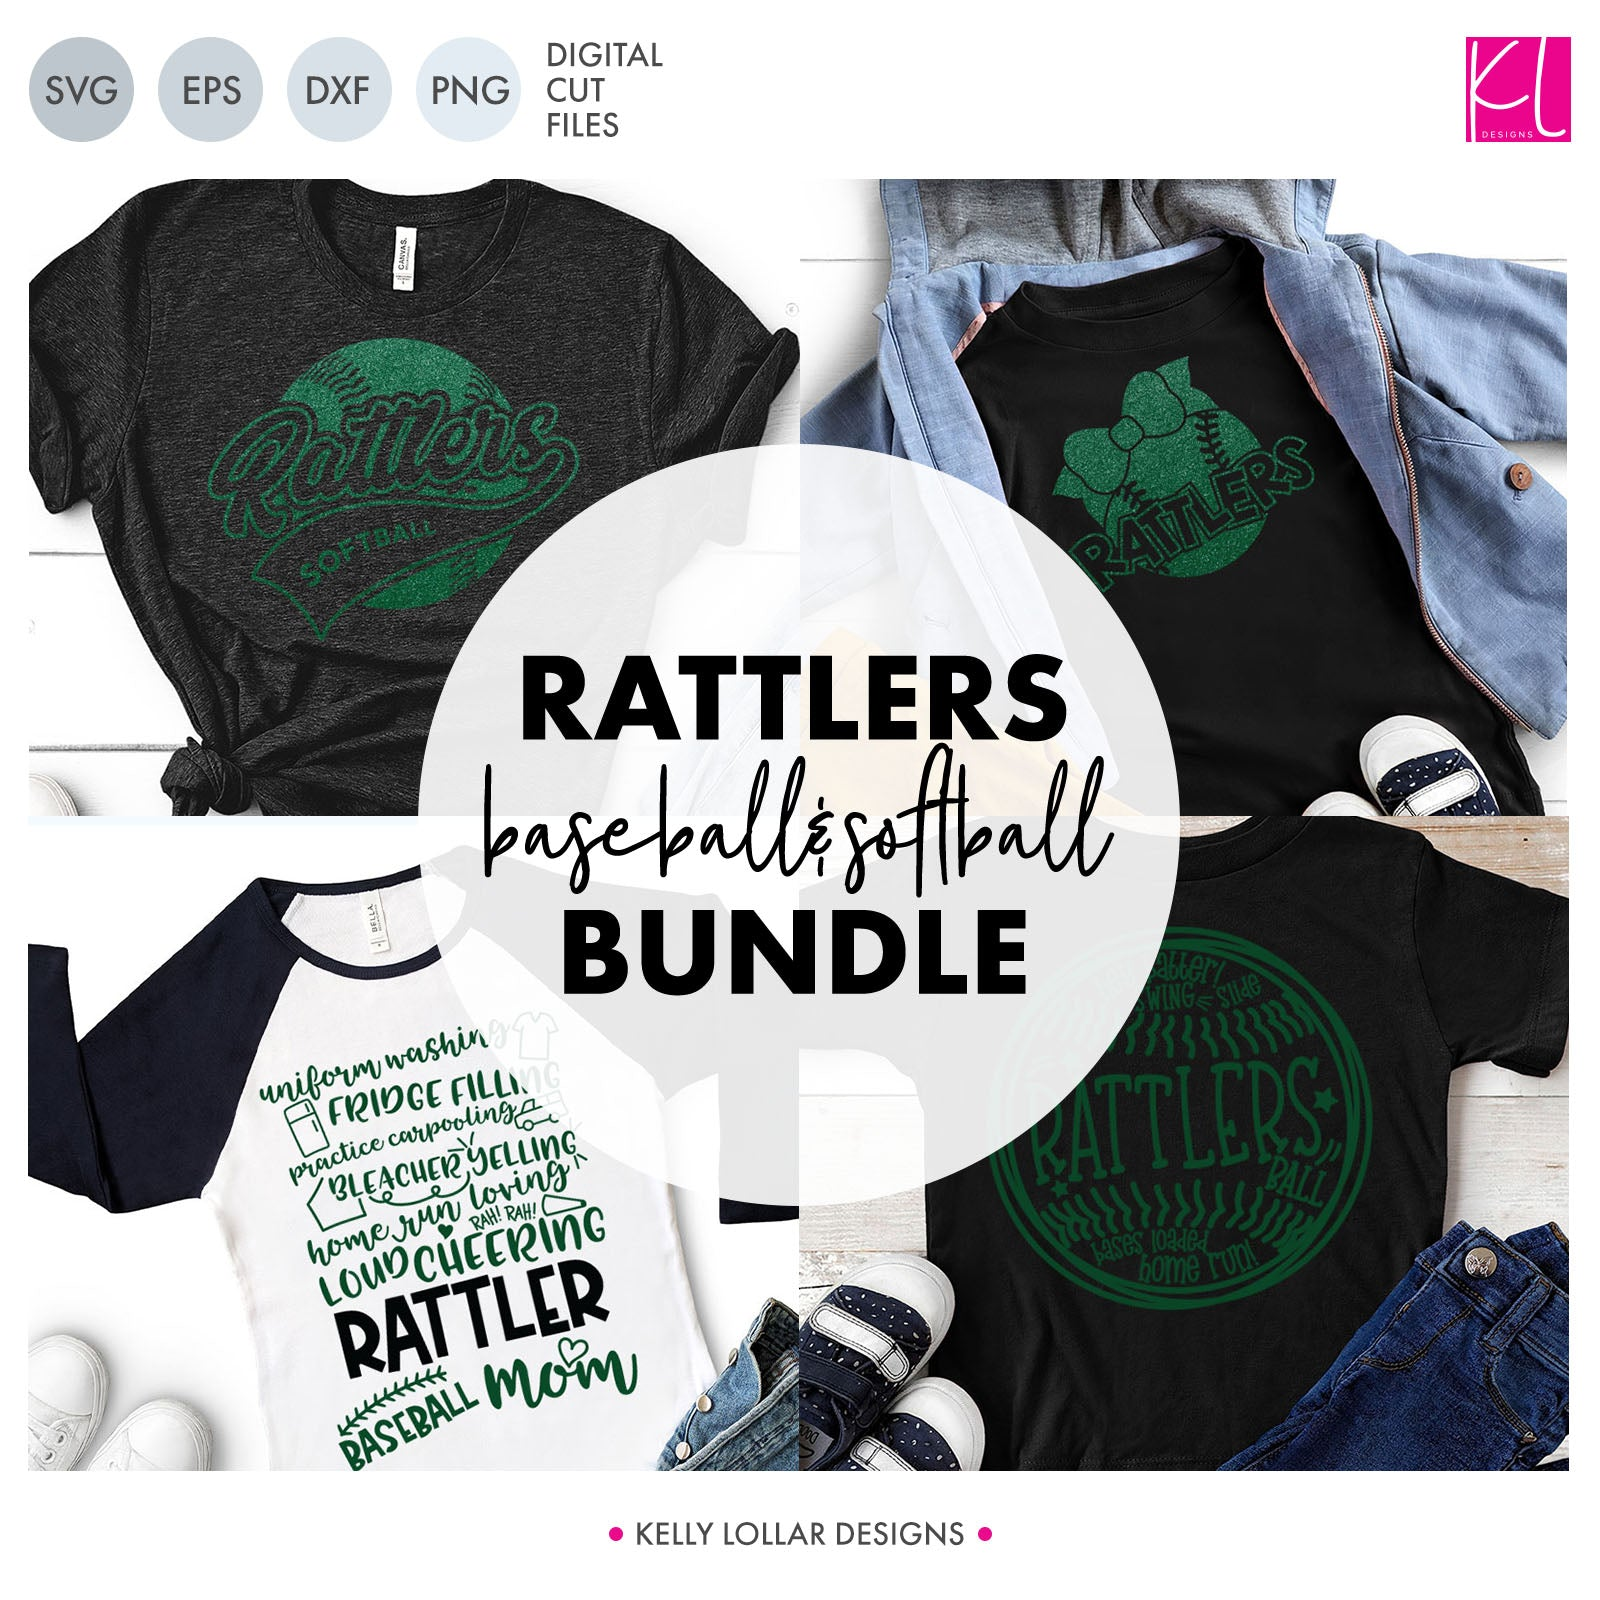 Rattlers Baseball & Softball Bundle | SVG DXF EPS PNG Cut Files It's baseball and softball season, so Rattler crafter know what that means ... new spirit shirts! This fifteen-piece bundle includes a little something for everyone - from girly and cute to